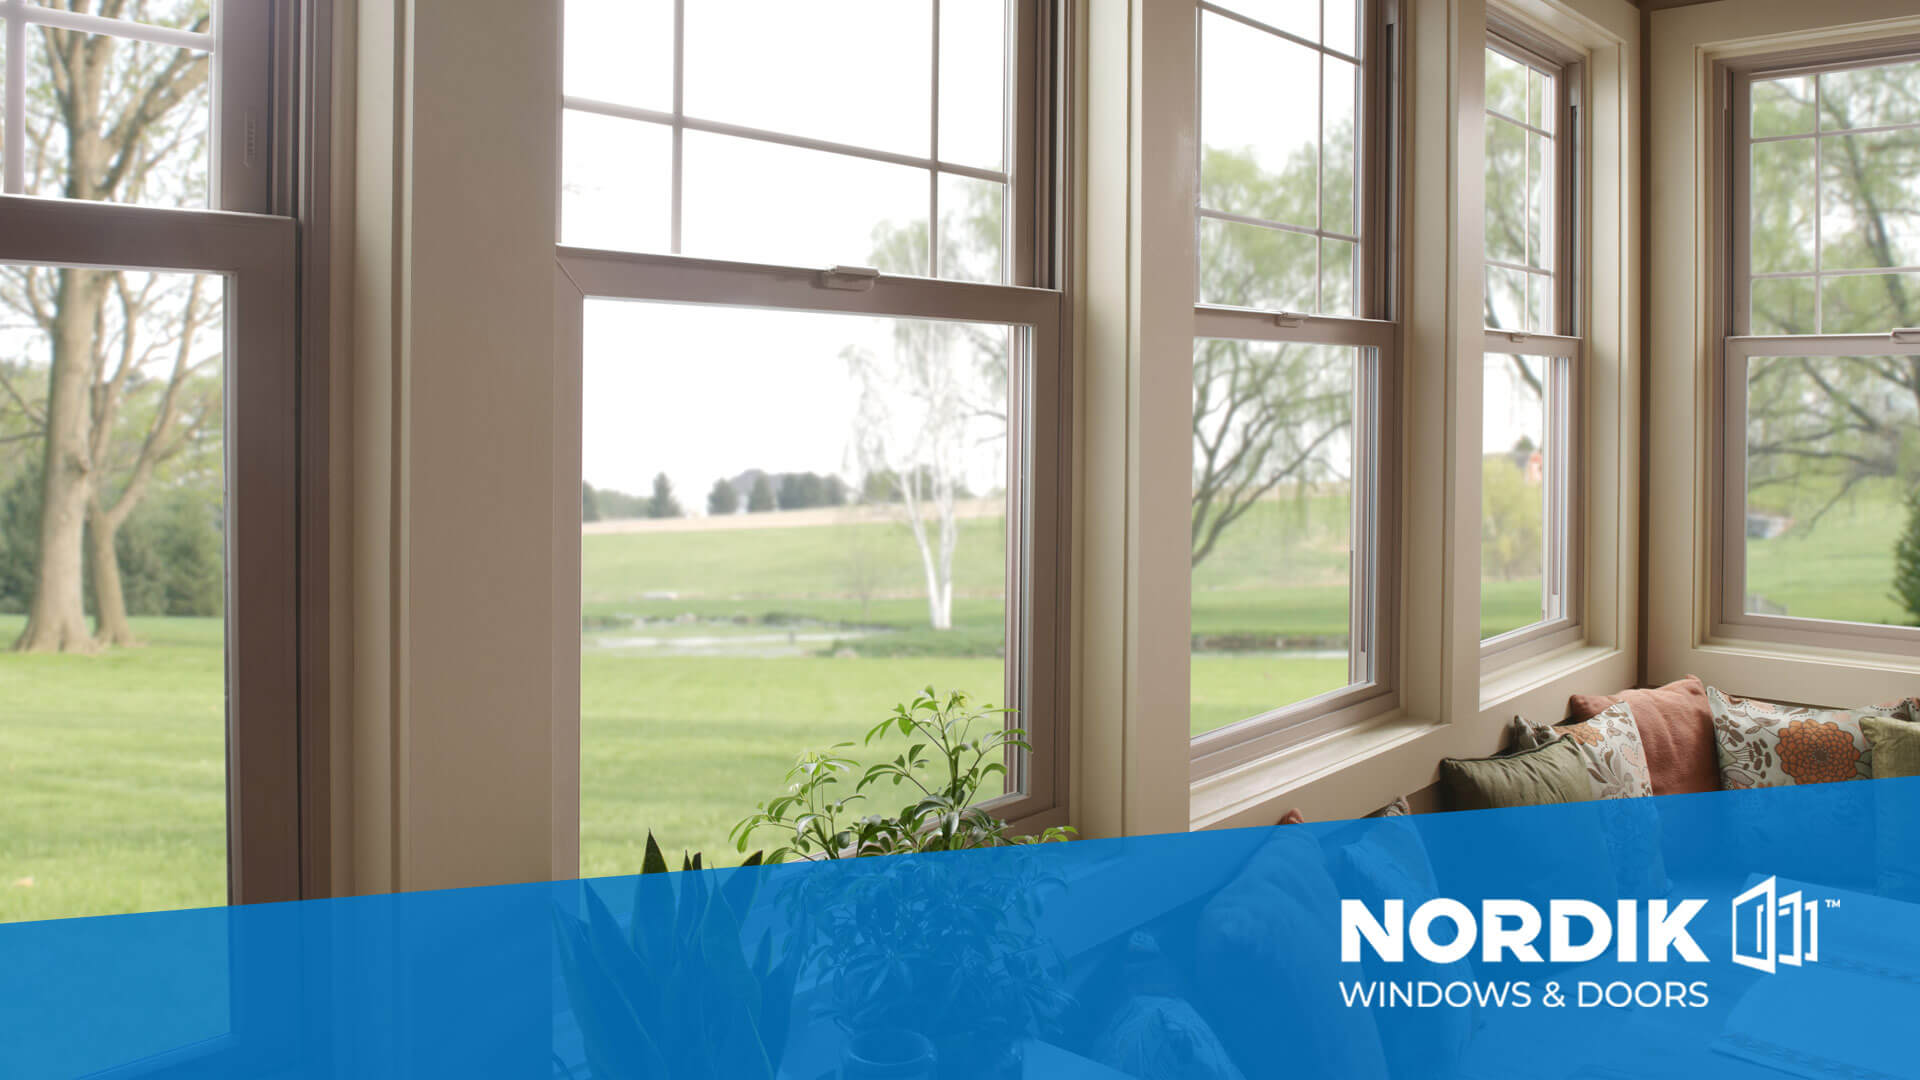 Why Energy Ratings Are Important When Ping For Replacement Windows Nordik Doors